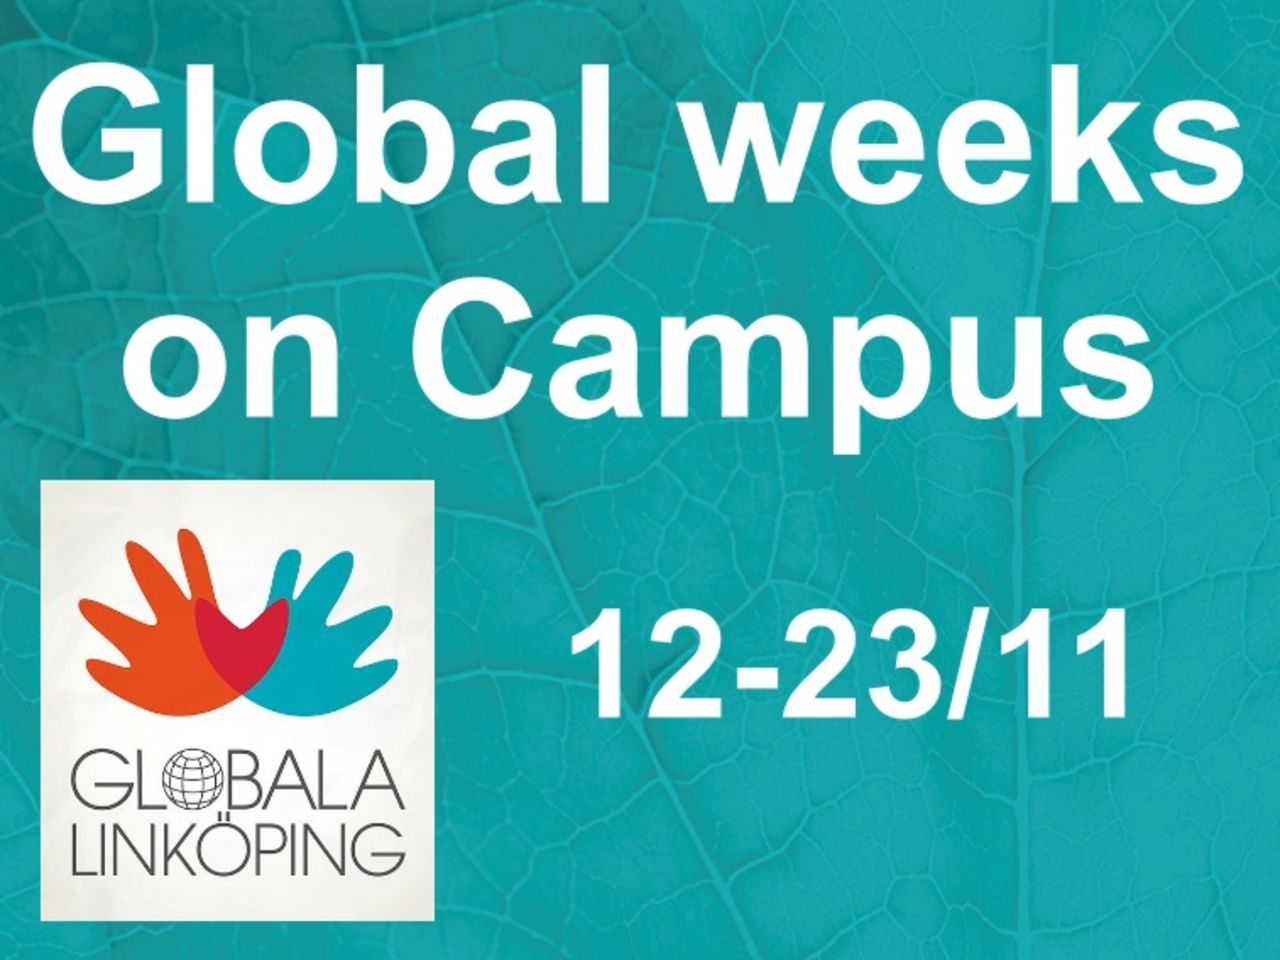 Global weeks on Campus